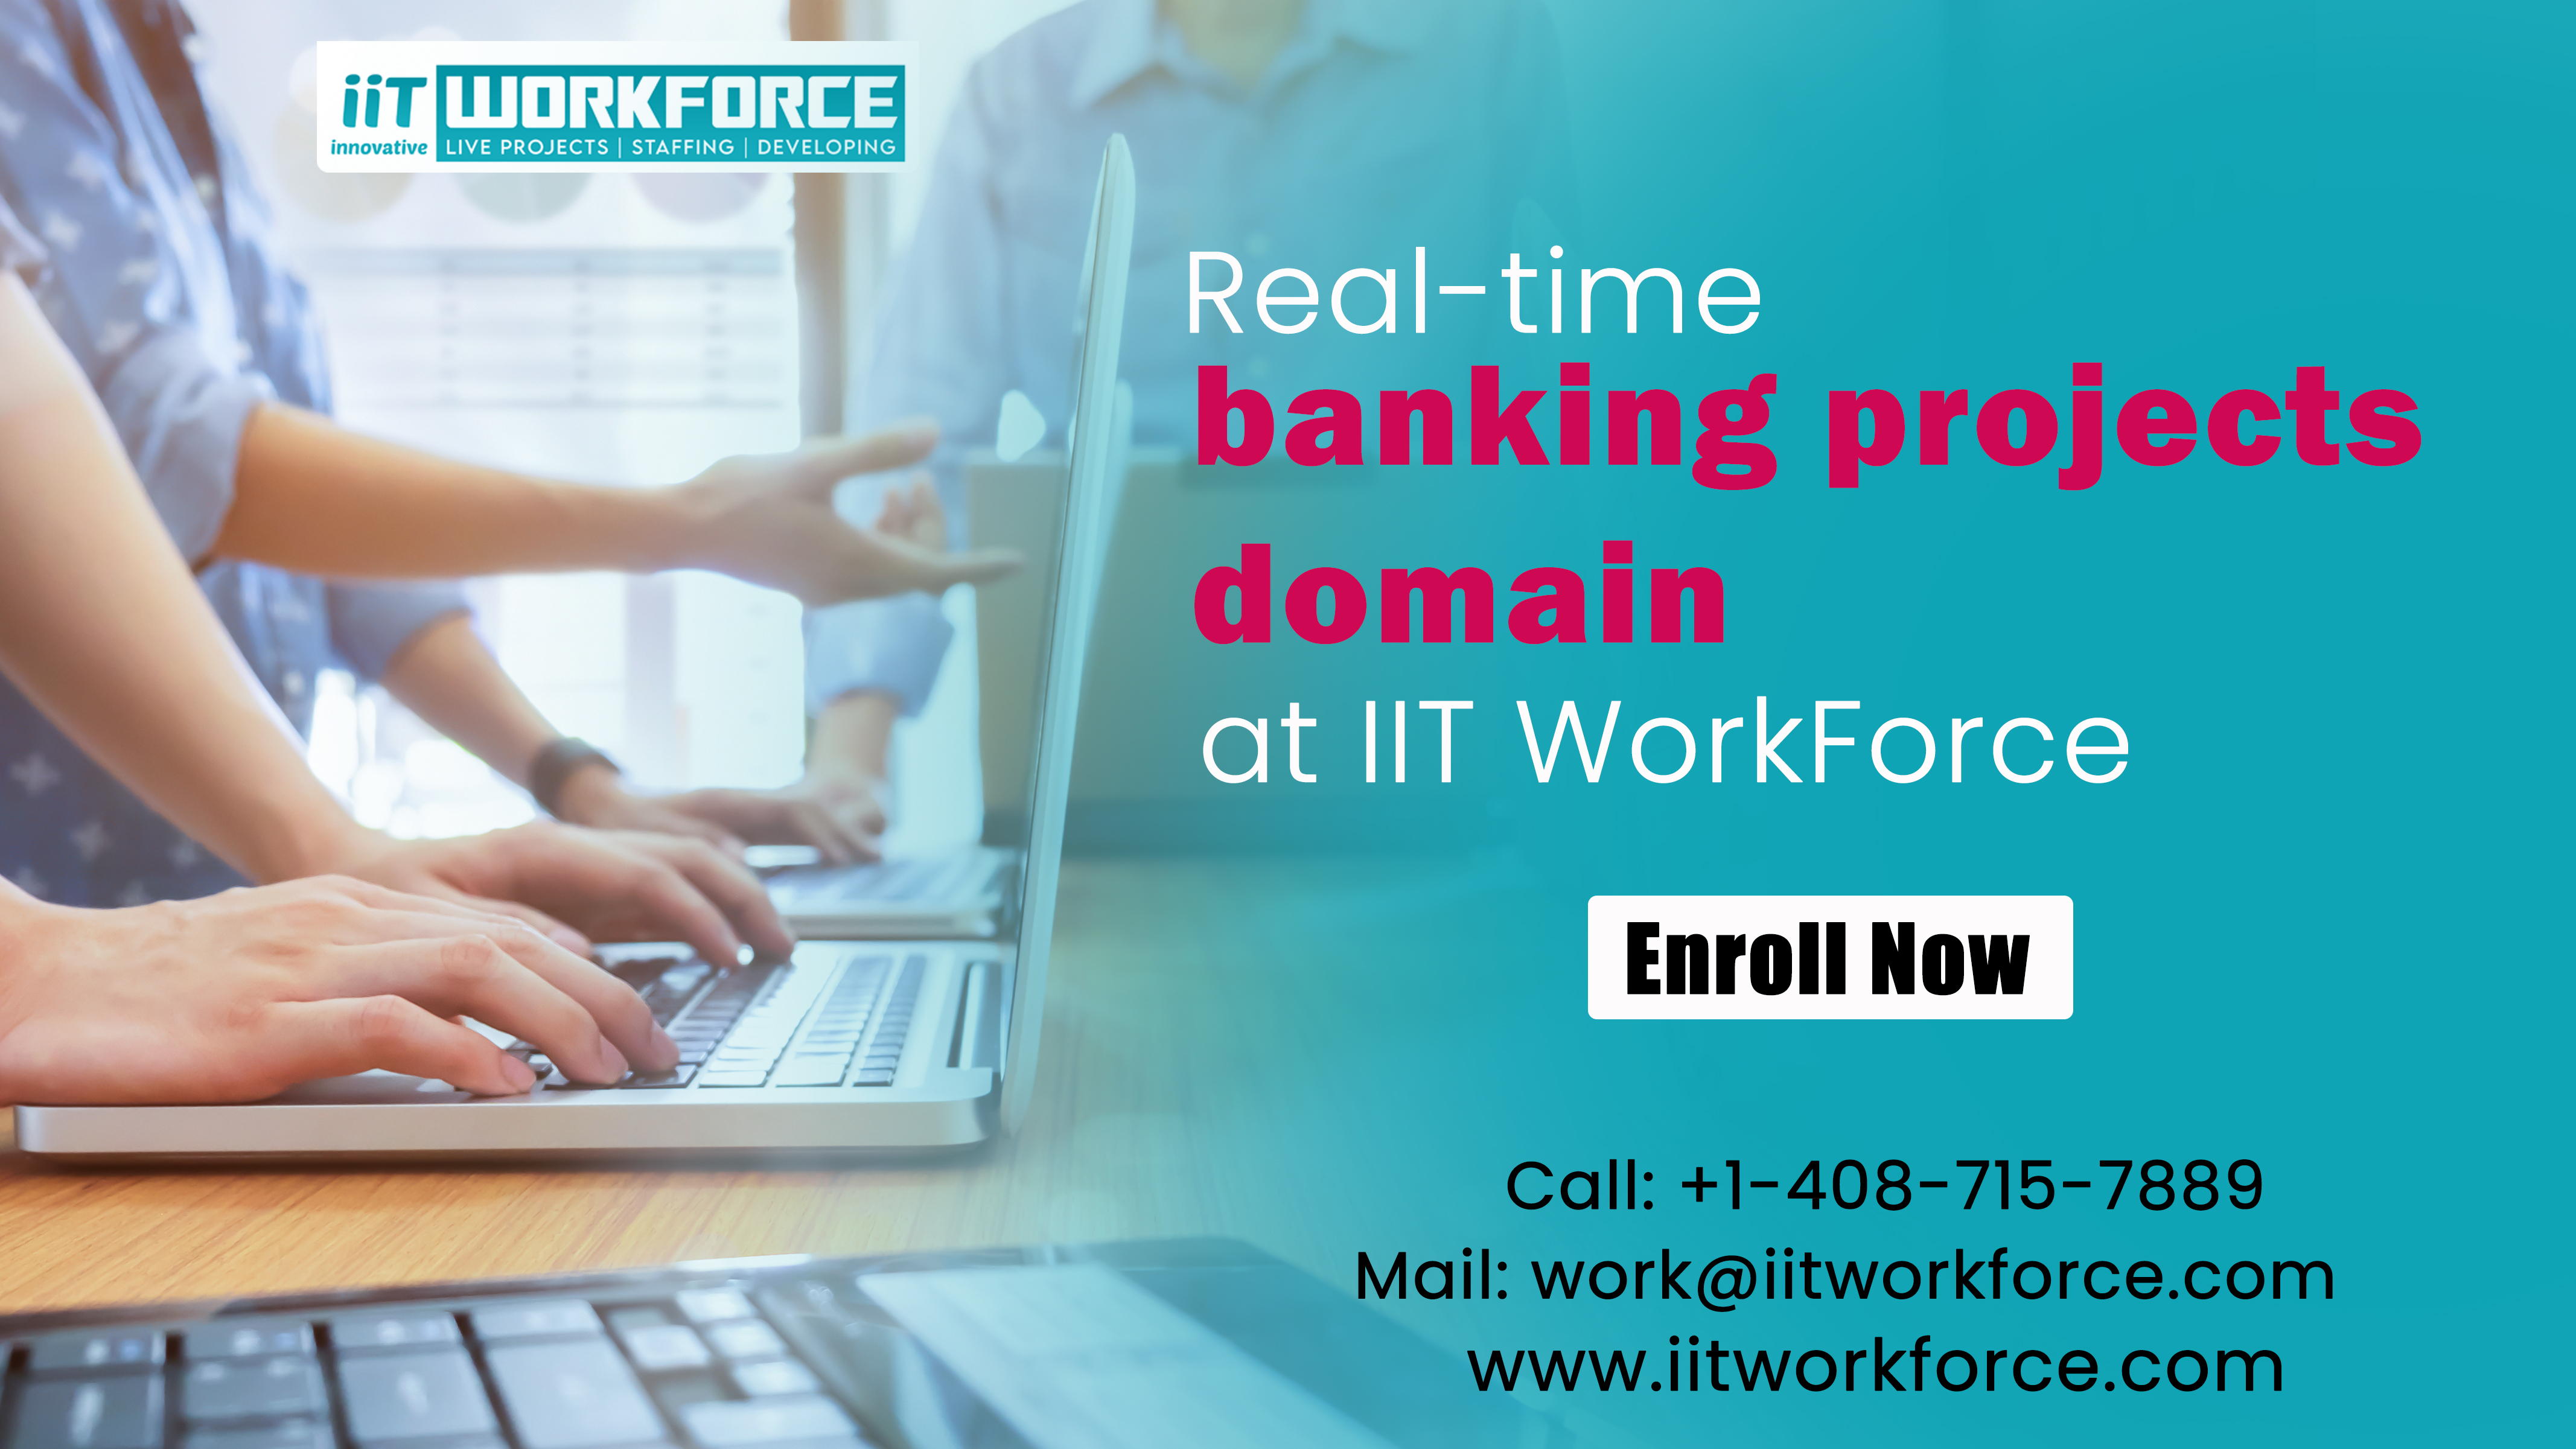 Real-time banking projects domain at iiT WorkForce